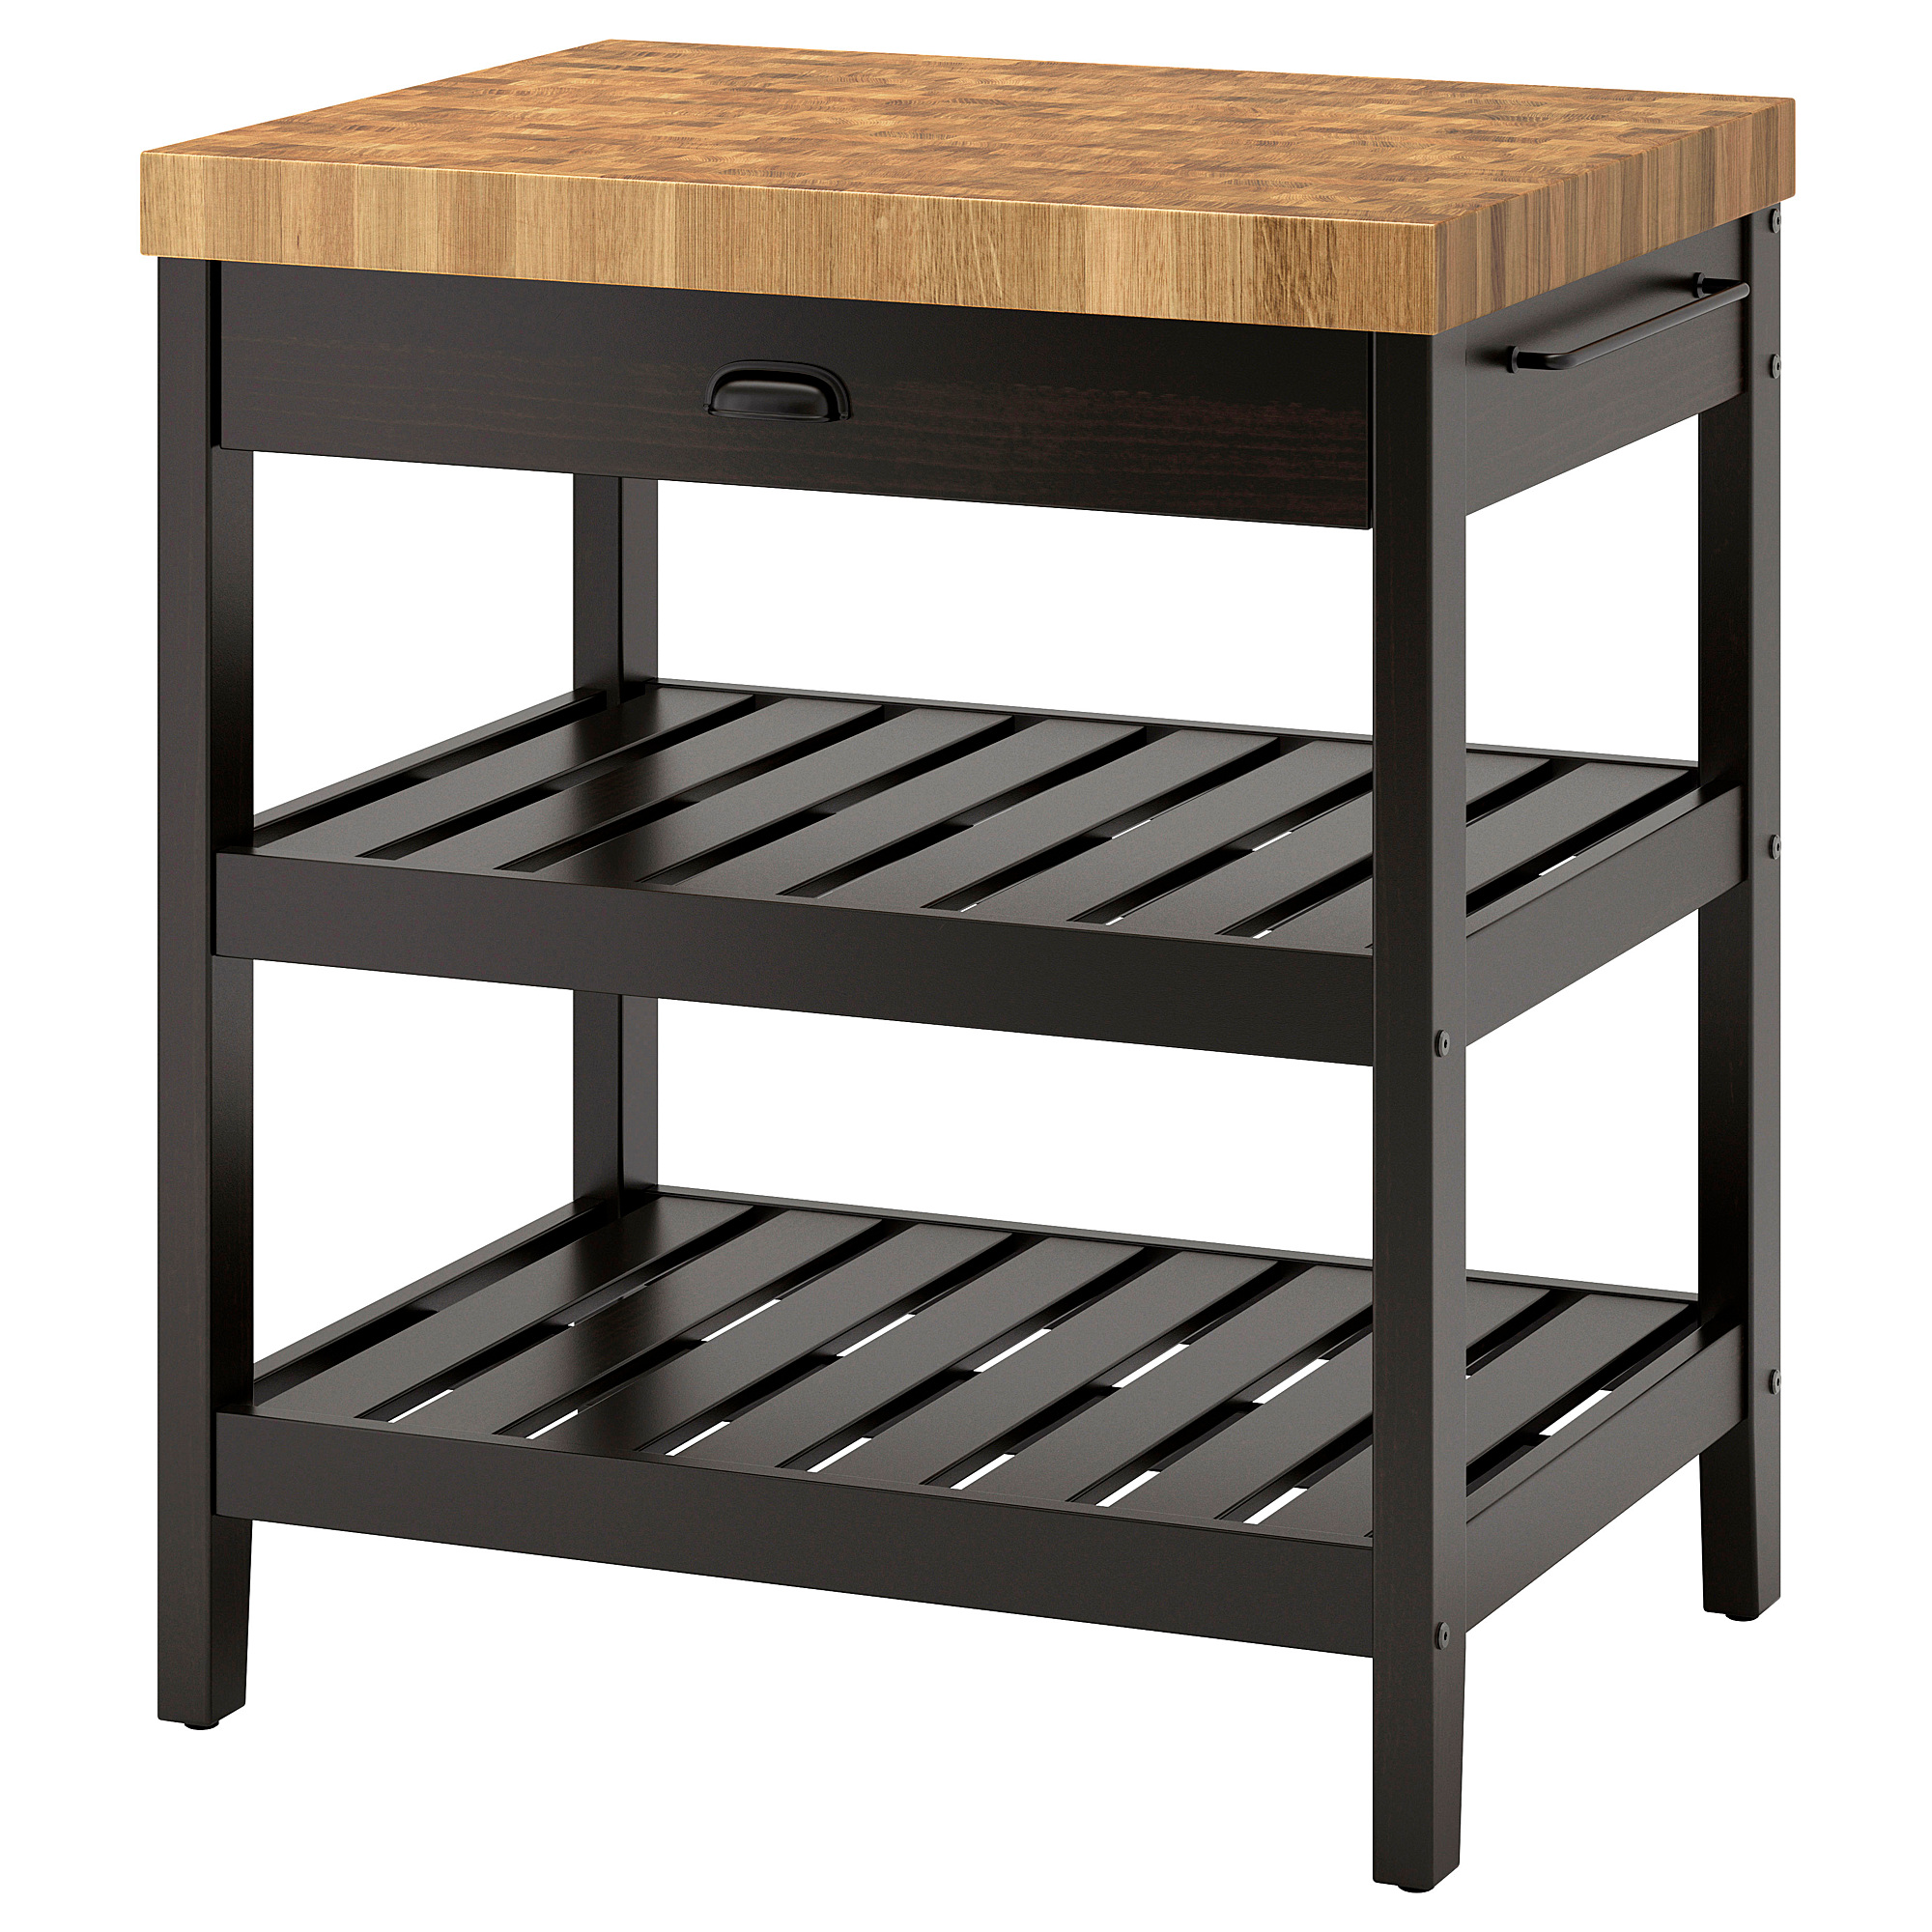 Vadholma Kitchen Island Black Oak Ikea Hong Kong And Macau